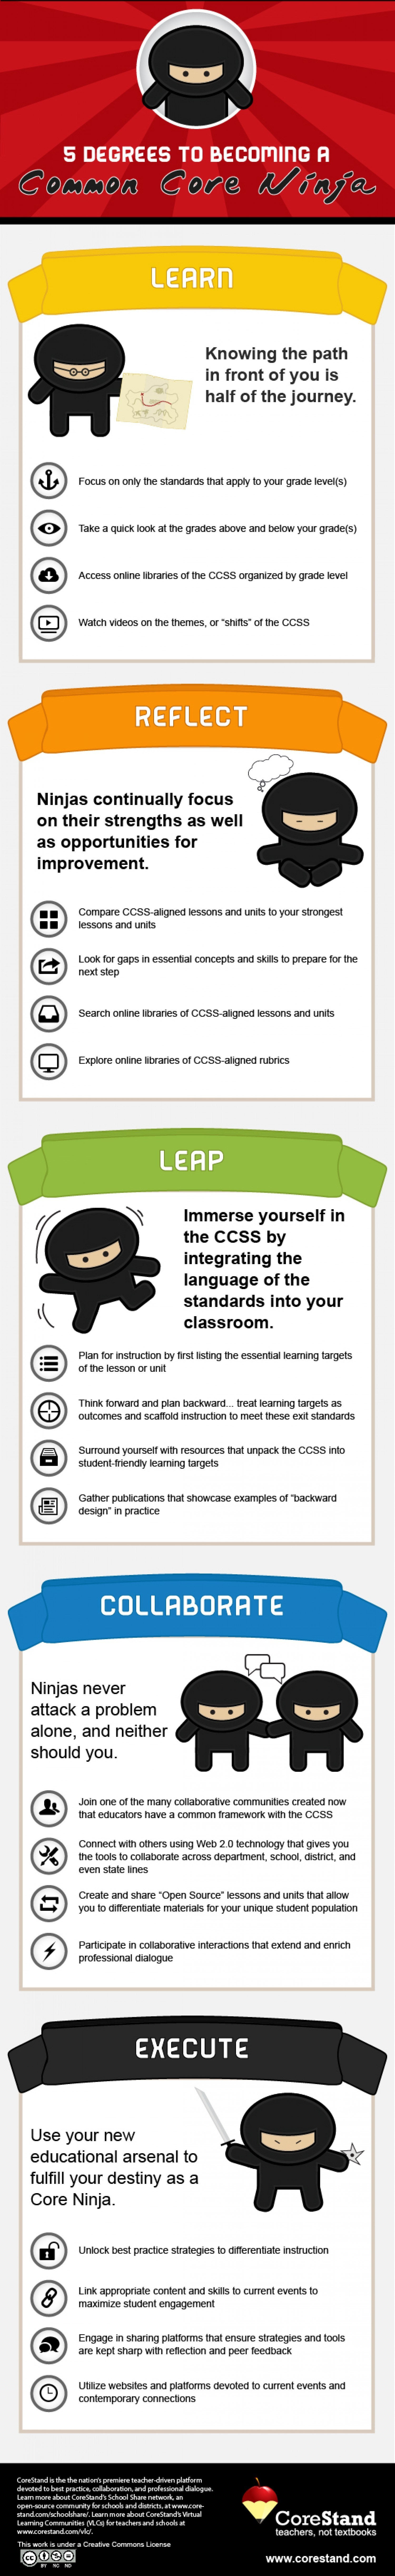 How To Become A Common Core Ninja Infographic